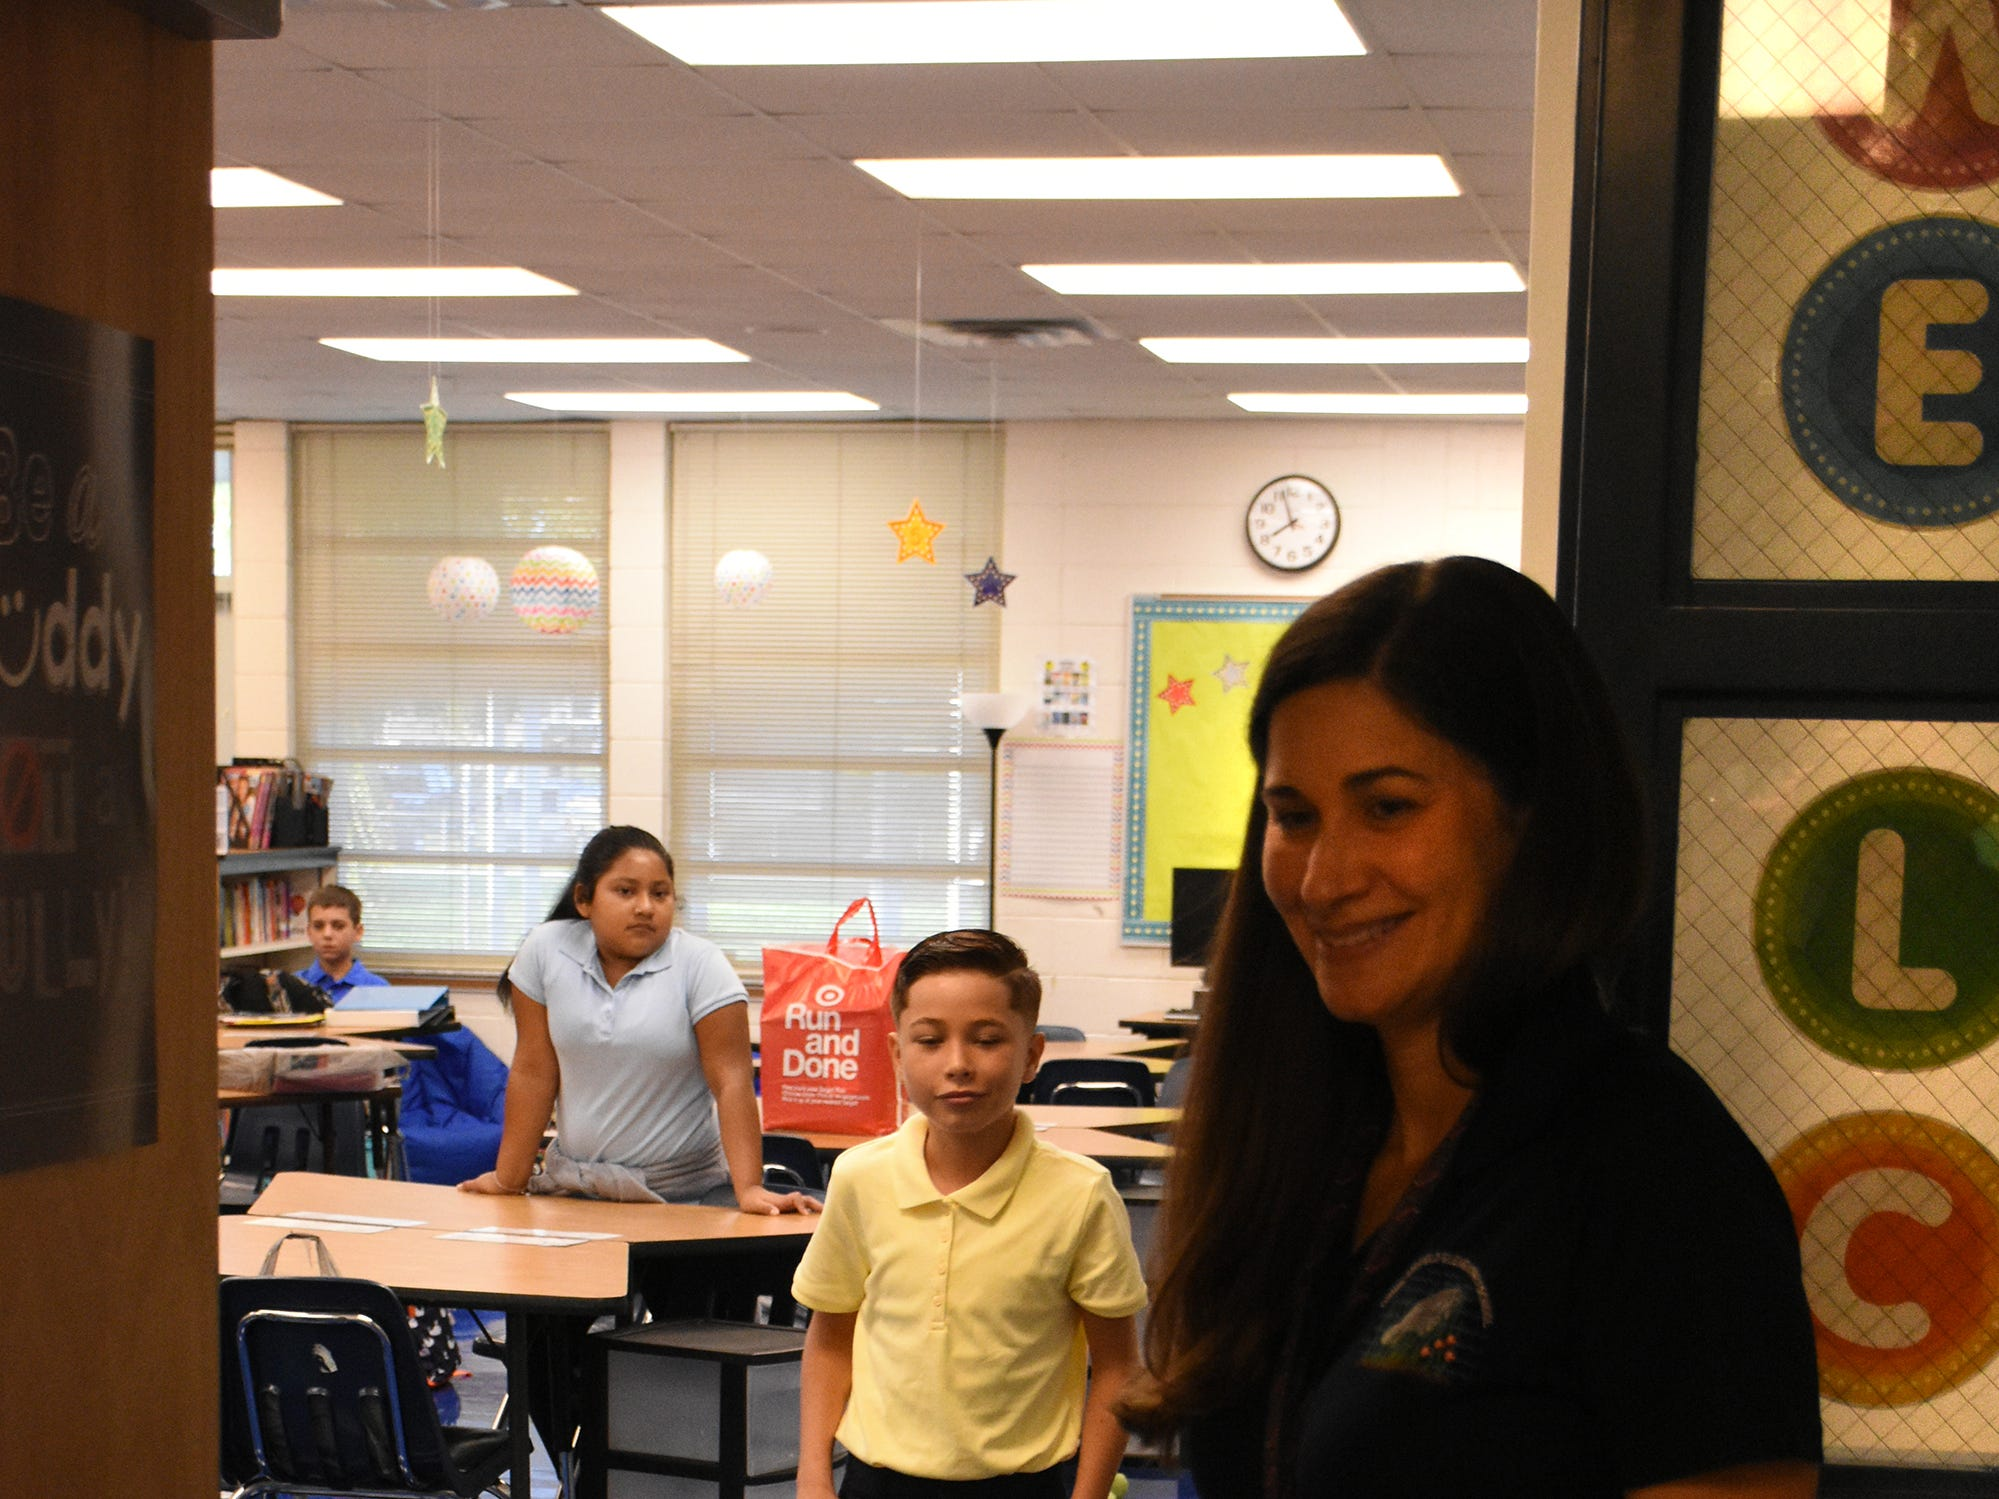 Fifth grade teacher Marilyn Morales welcomes her new class at TBE. Marco Island students, along with all of Collier County, returned to school for the first day of classes in the new school year on Wednesday.